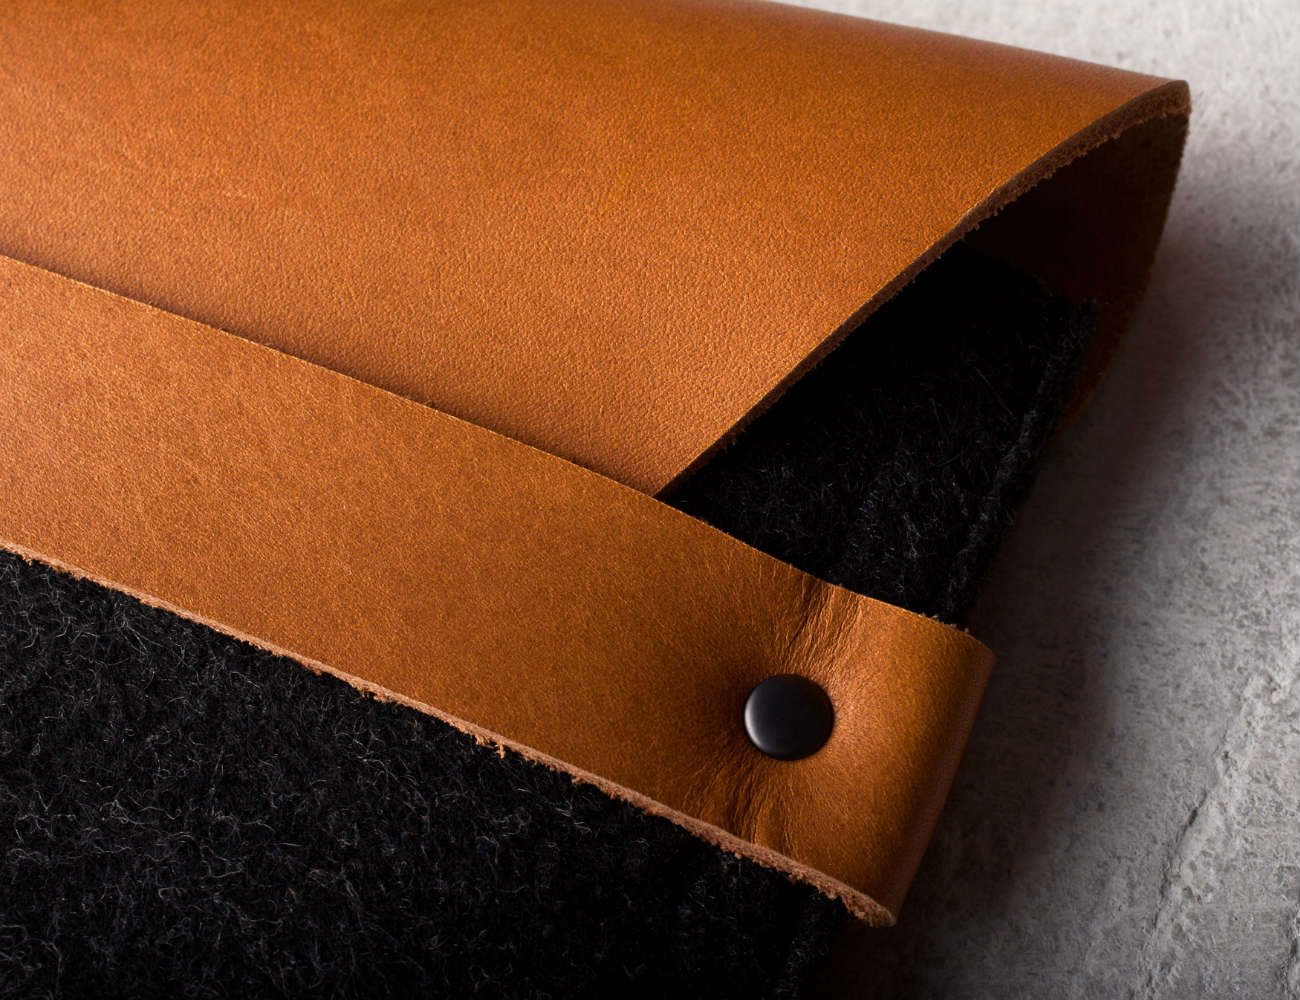 ipad-mini-sleeve-brown-by-mujjo-04